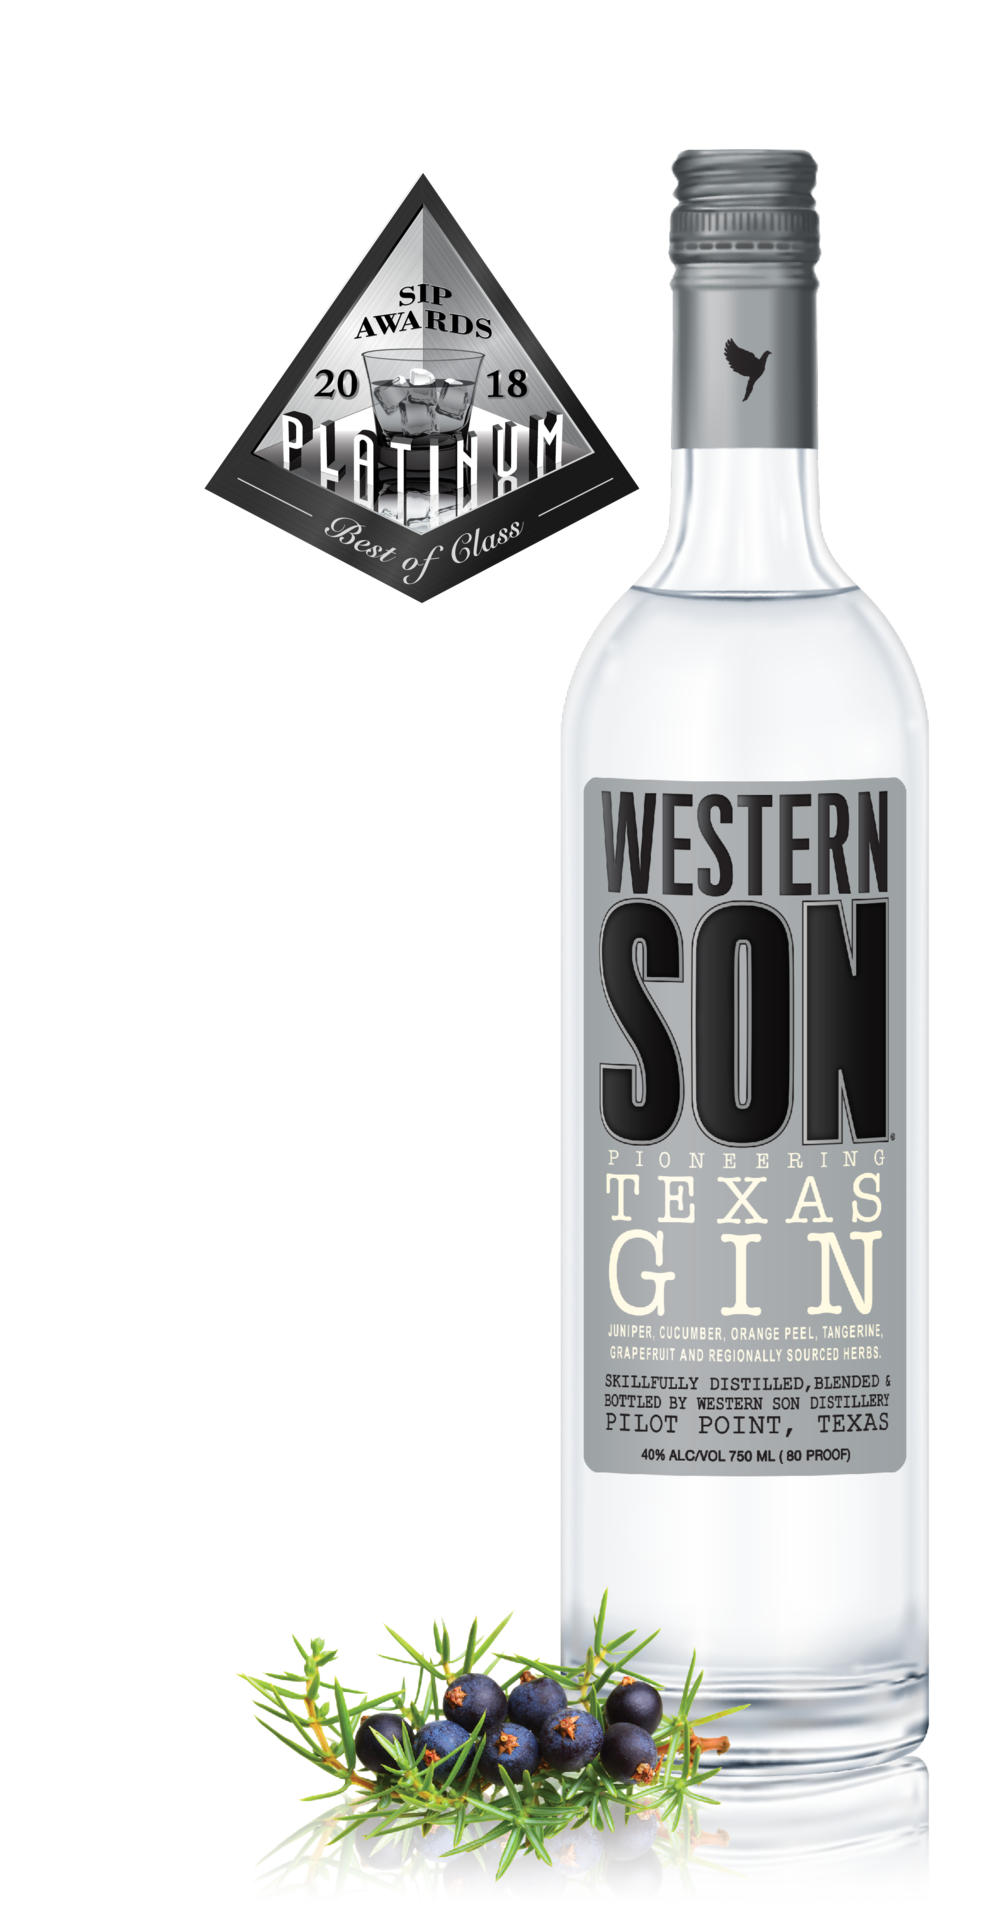 PIONEERING TEXAS GIN - Fresh juniper and bergamot fill the glass with hints of dried ruby red grapefruit, and black tea. A tasting finish that is lively and well balanced. Botanicals include juniper, cucumber, orange peel, tangerine, grapefruit, and herbs.Click for recipes